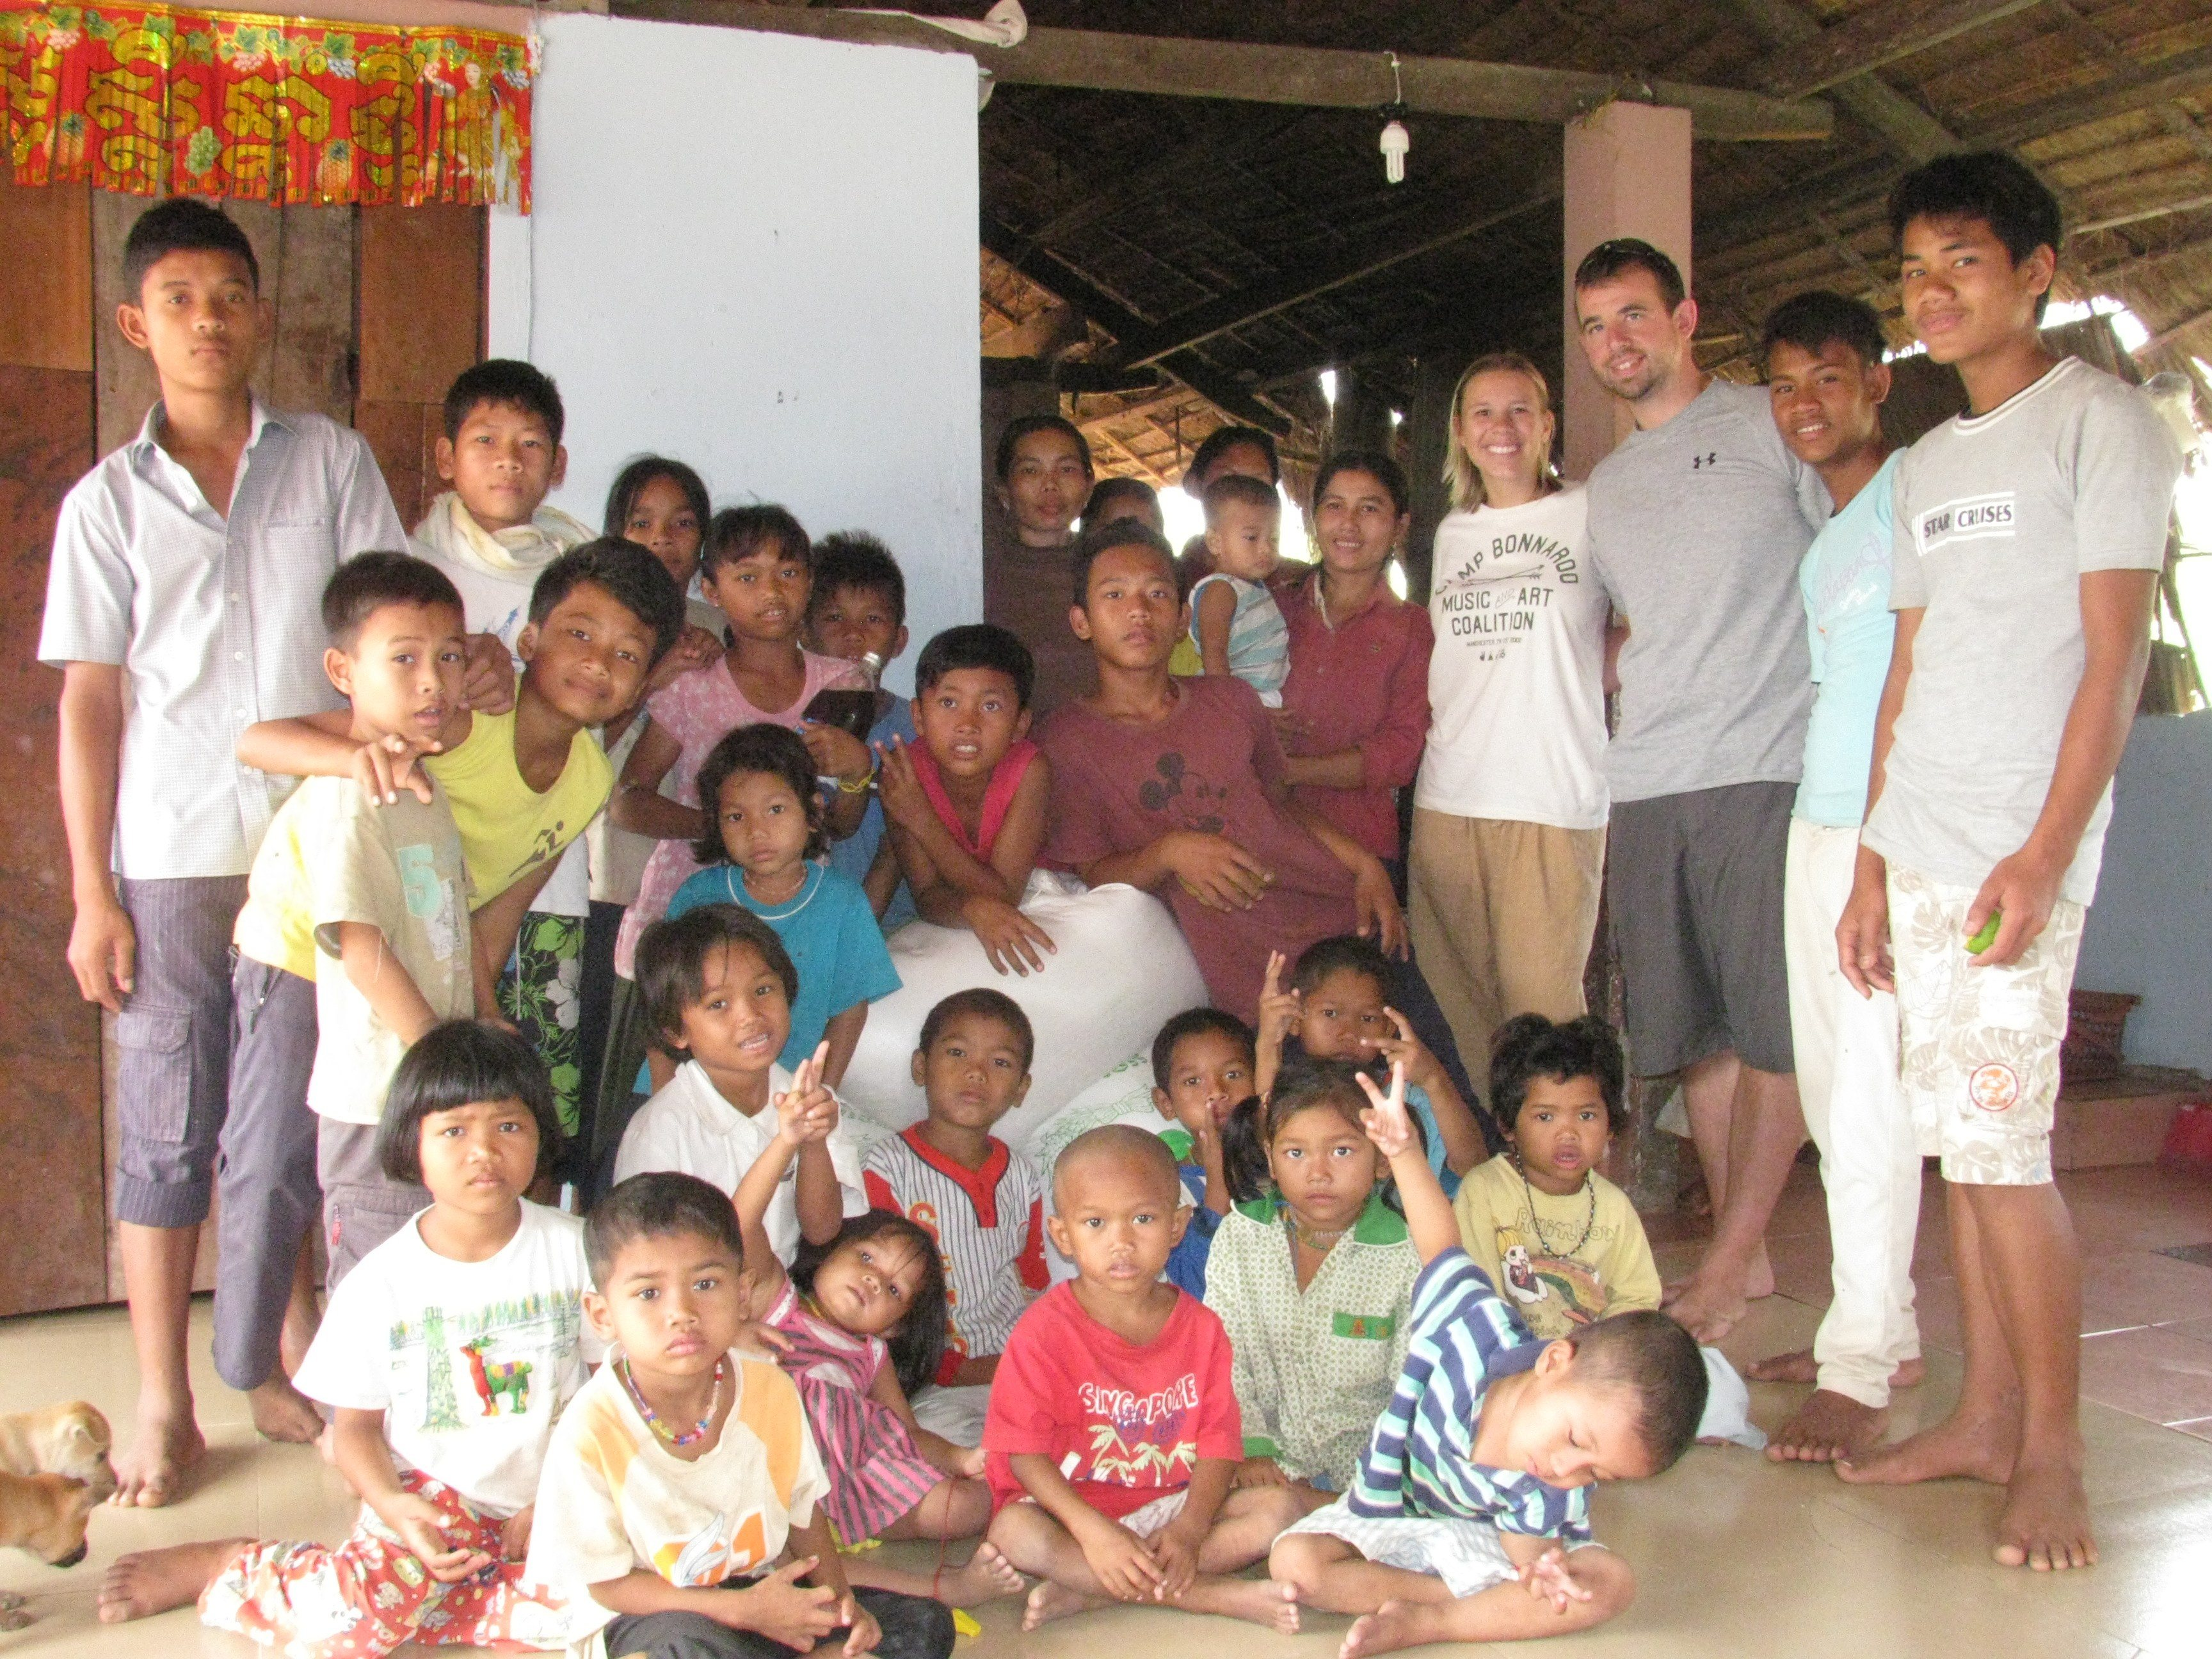 Tim and Robin with the welcoming community in Siem Reap.